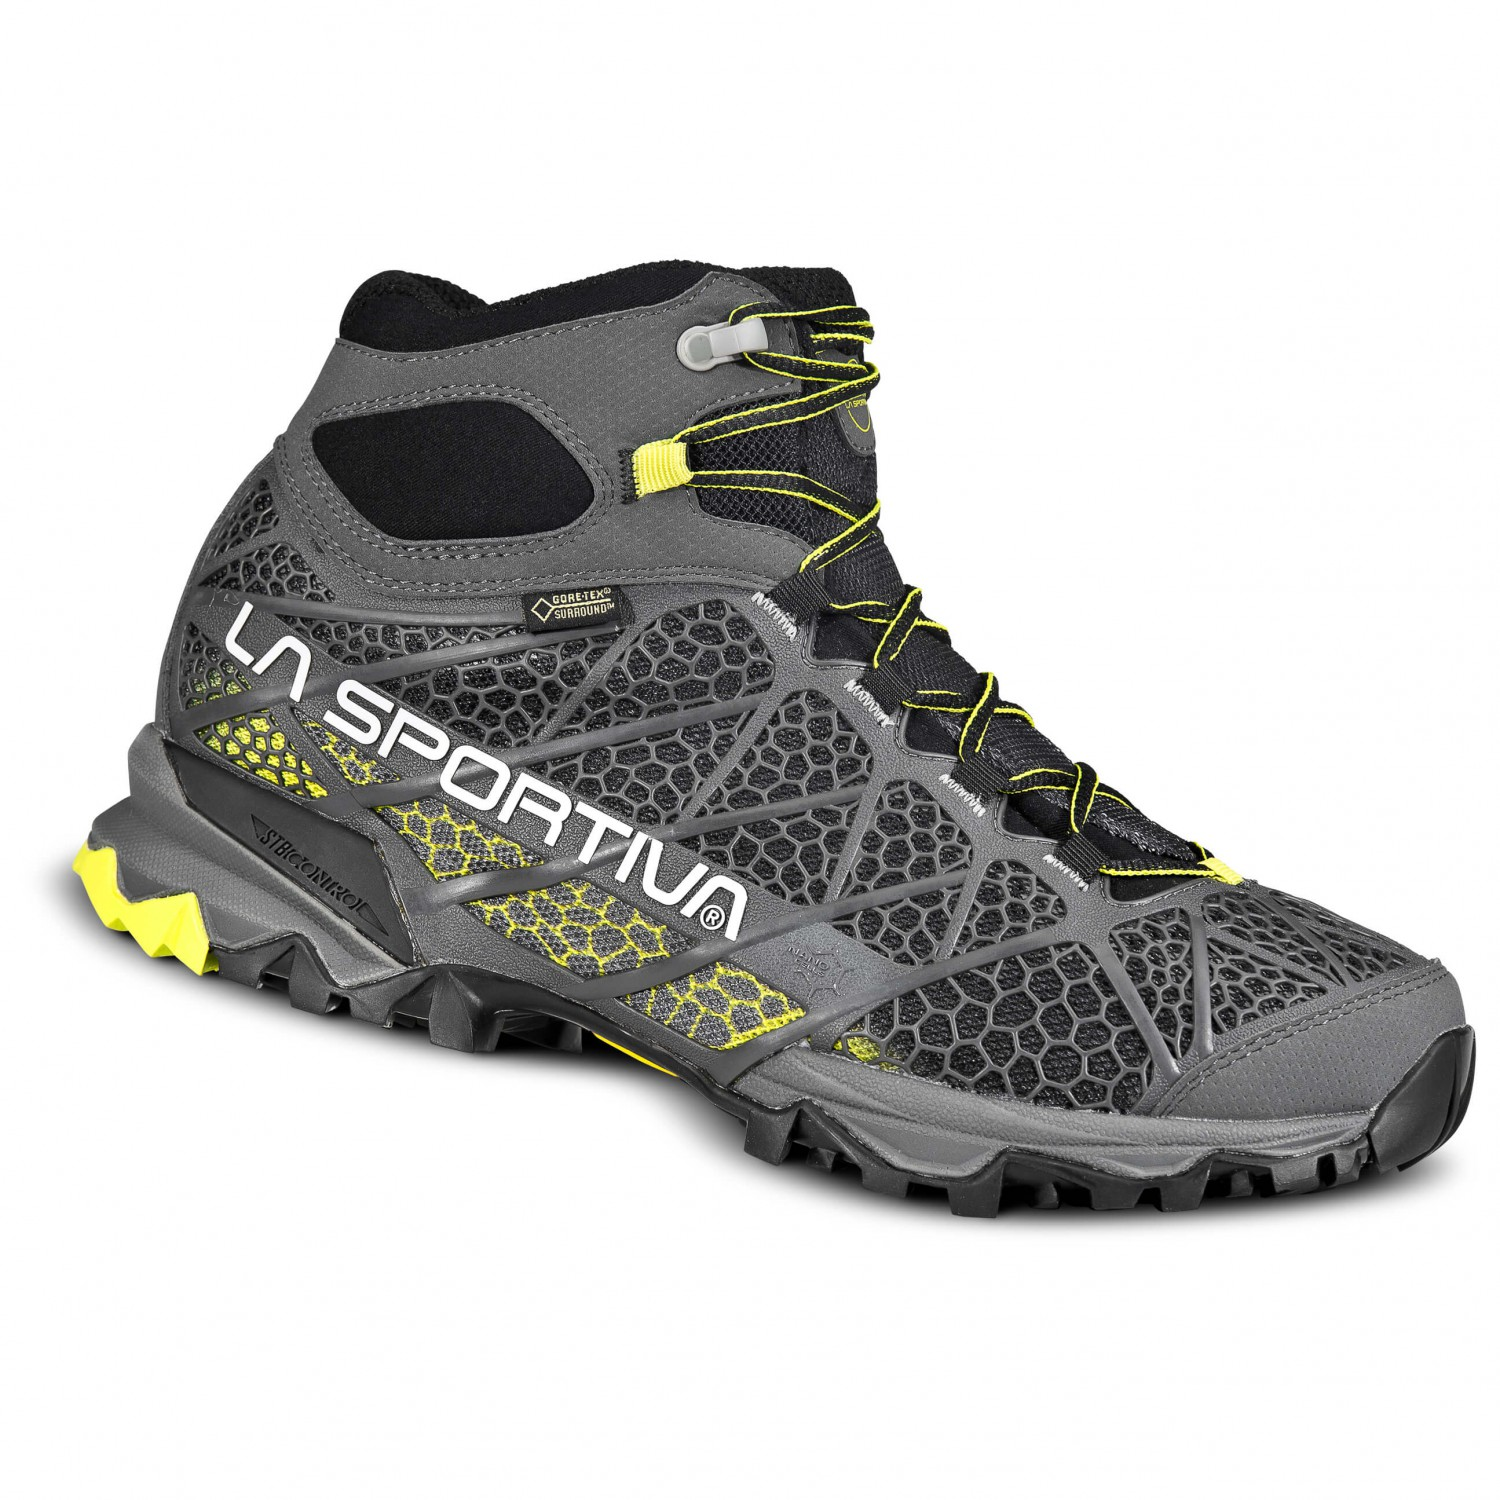 La Sportiva Core High Gtx Walking Boots Free Uk